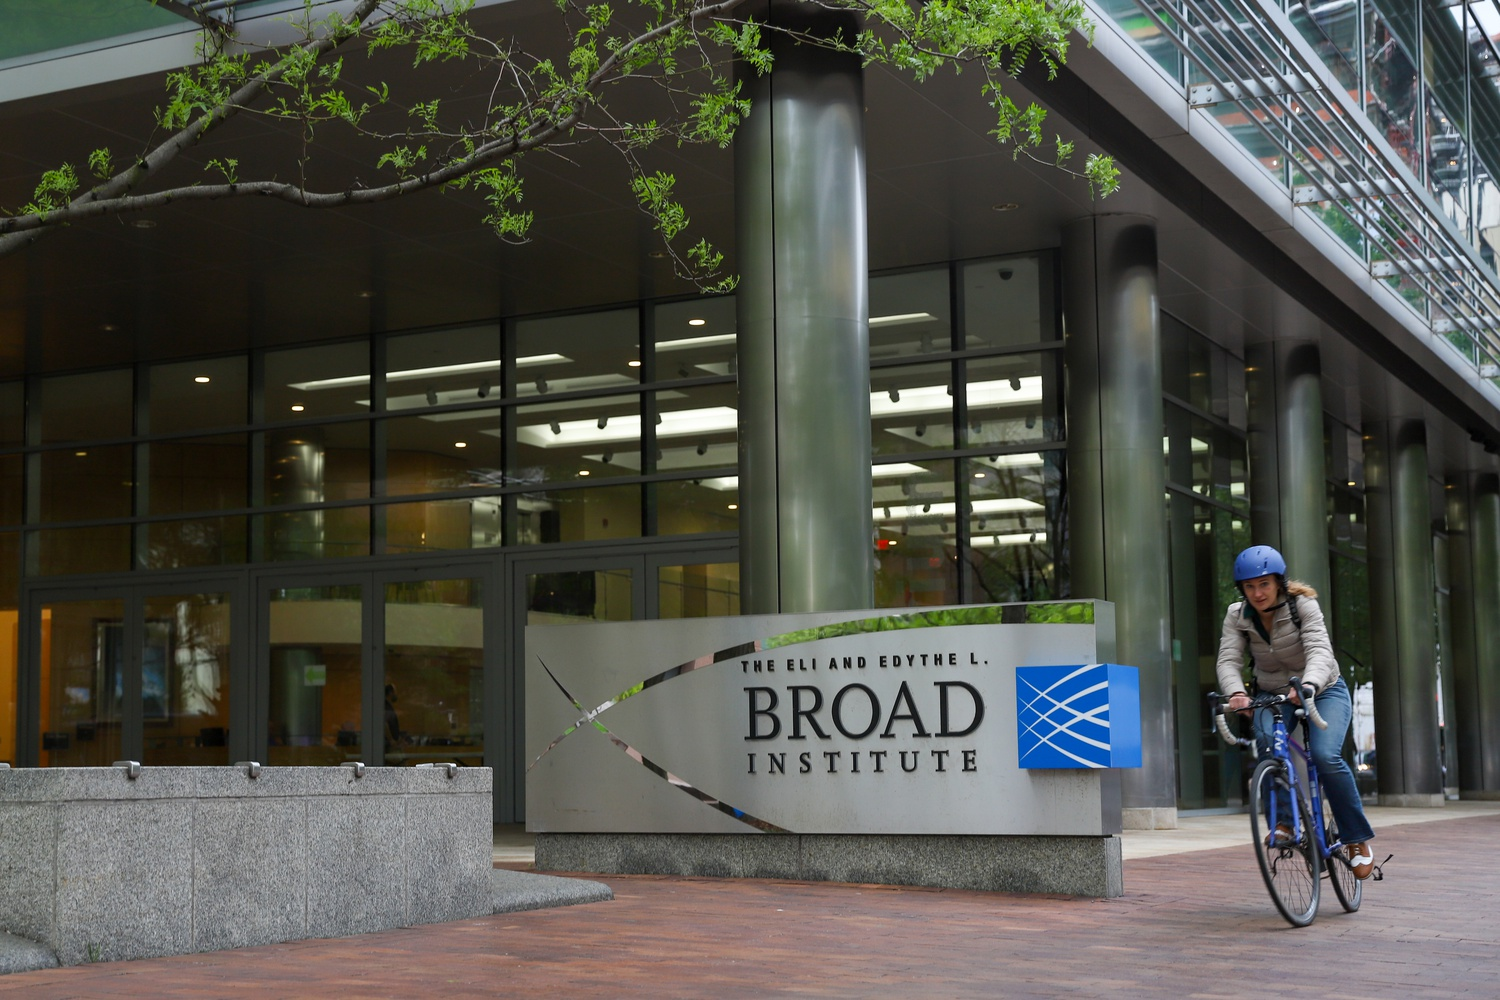 Located near Central Square, the Broad Institute is a center for biomedical and genomics research.